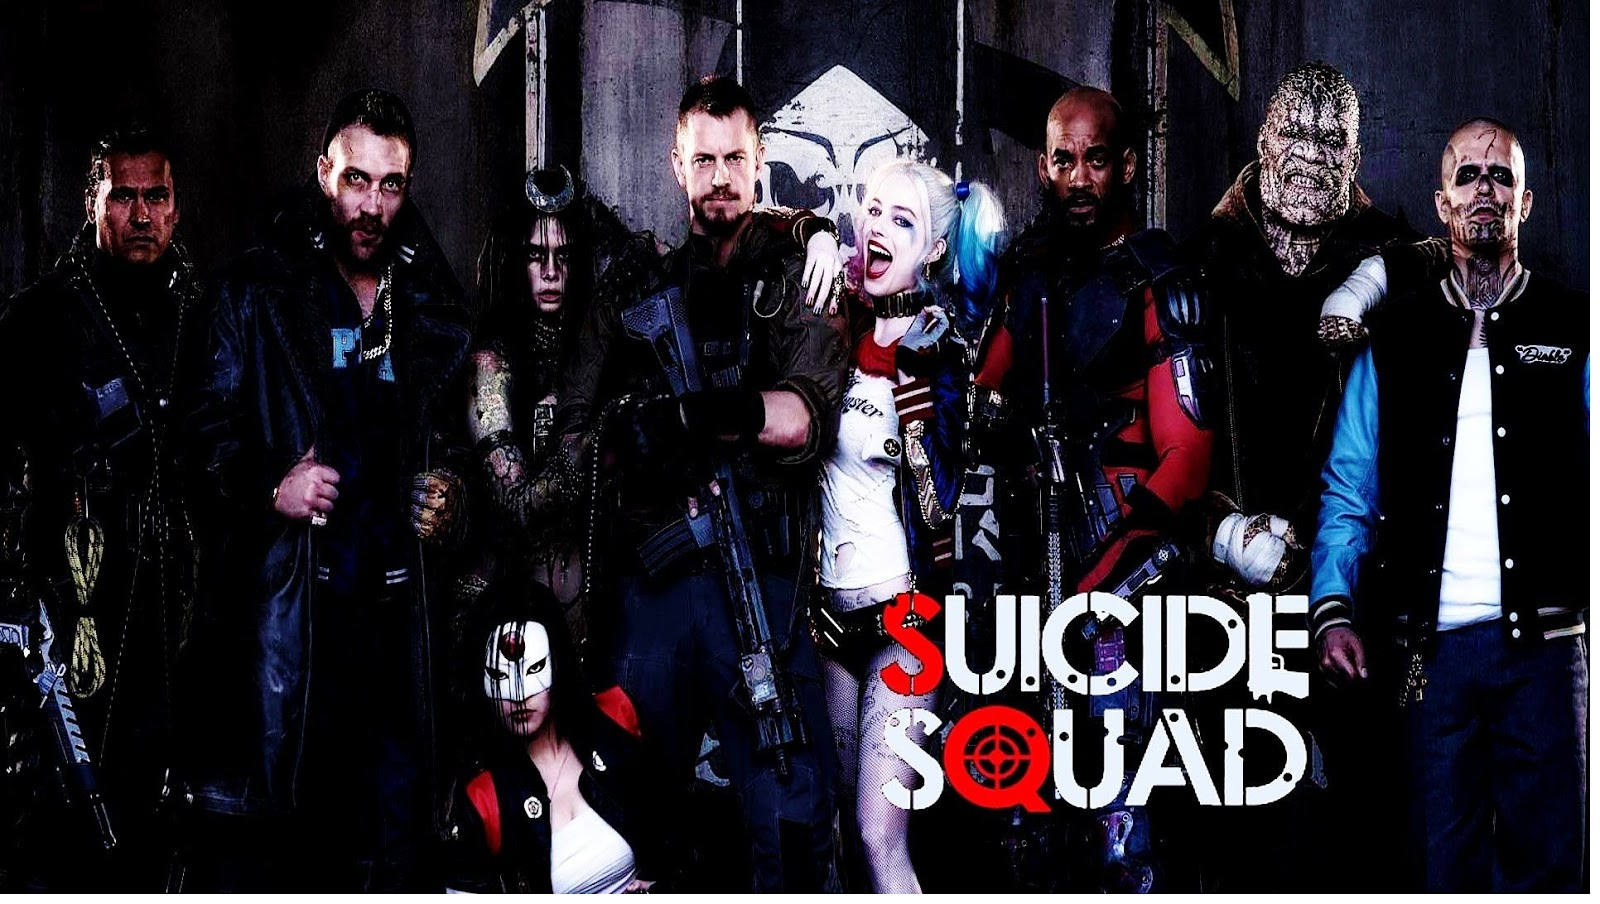 3d download suicide squad 2016 full movie free download hd.